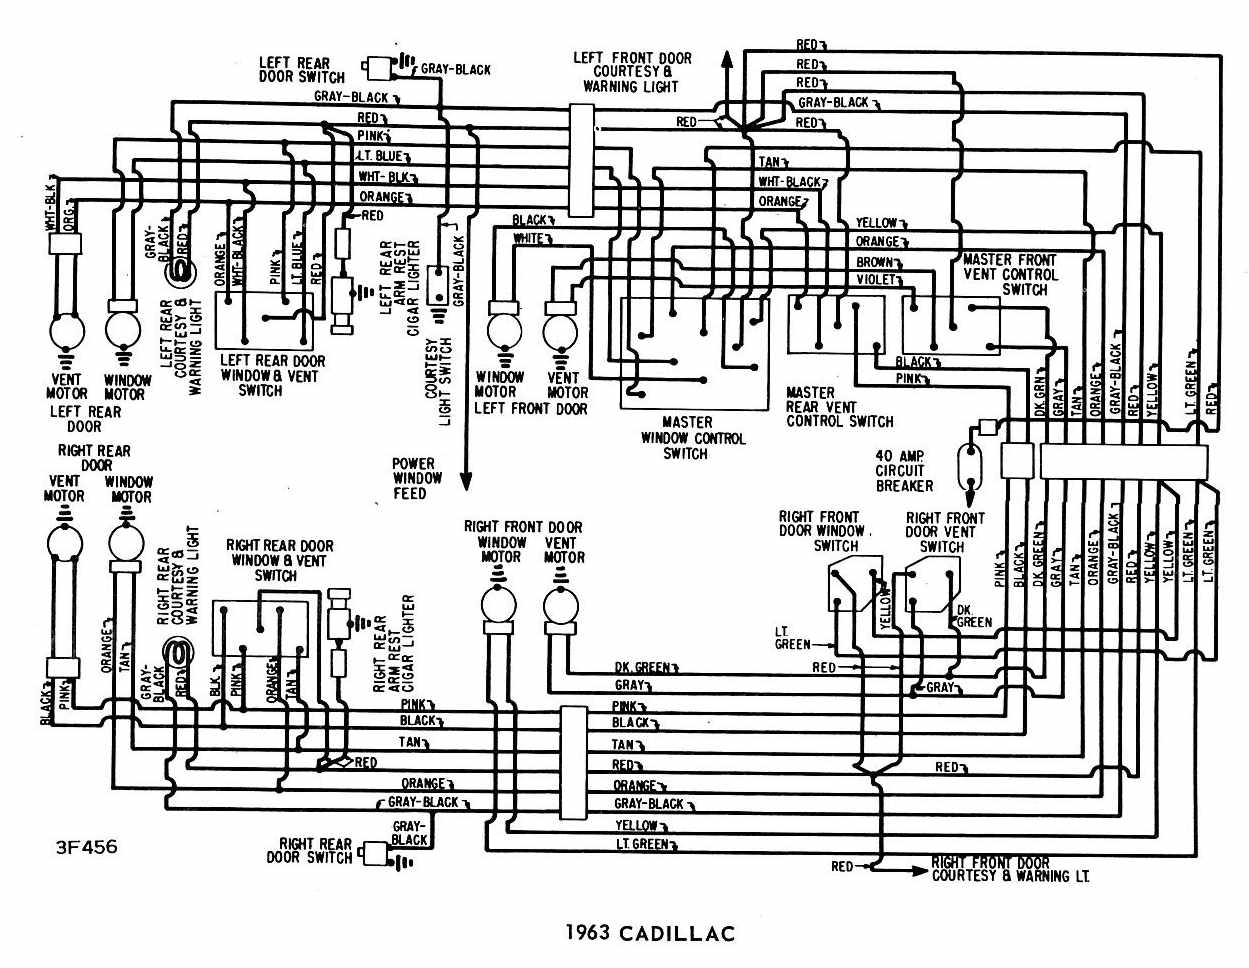 1966 mustang wiring diagram dashboard cadillac 1963 windows wiring diagram | all about wiring ... 1966 cadillac wiring diagram